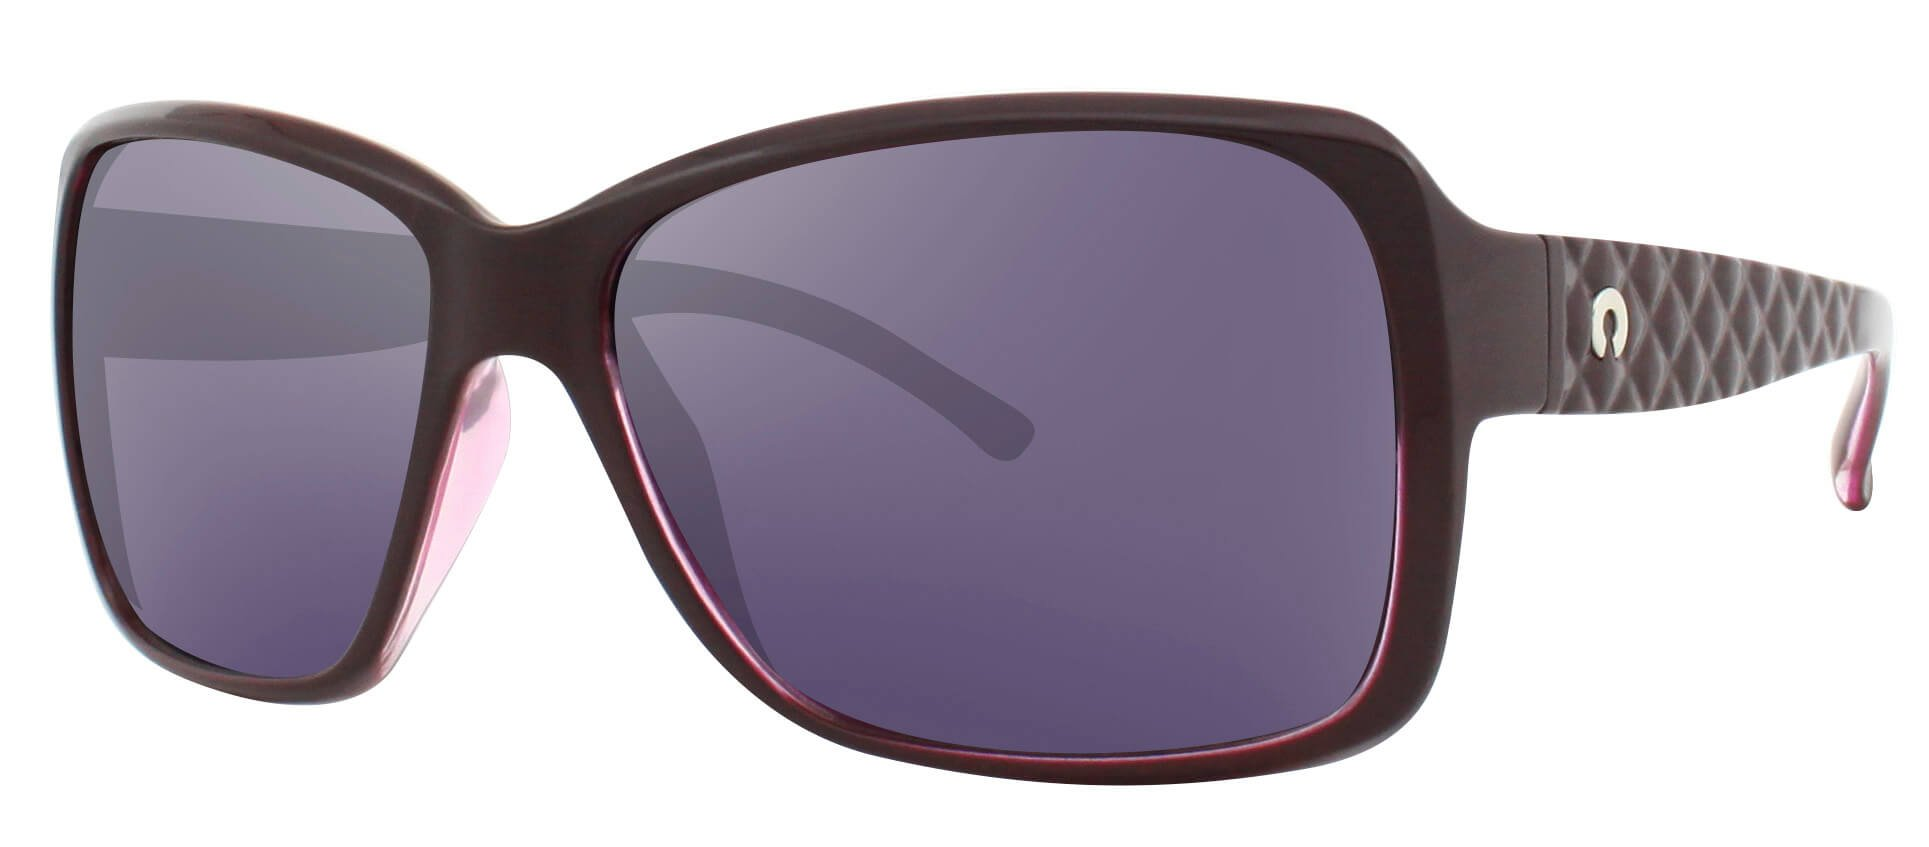 ÓC SECRET KATE PASSIONATE / POLARIZED GRADIENT GRAY